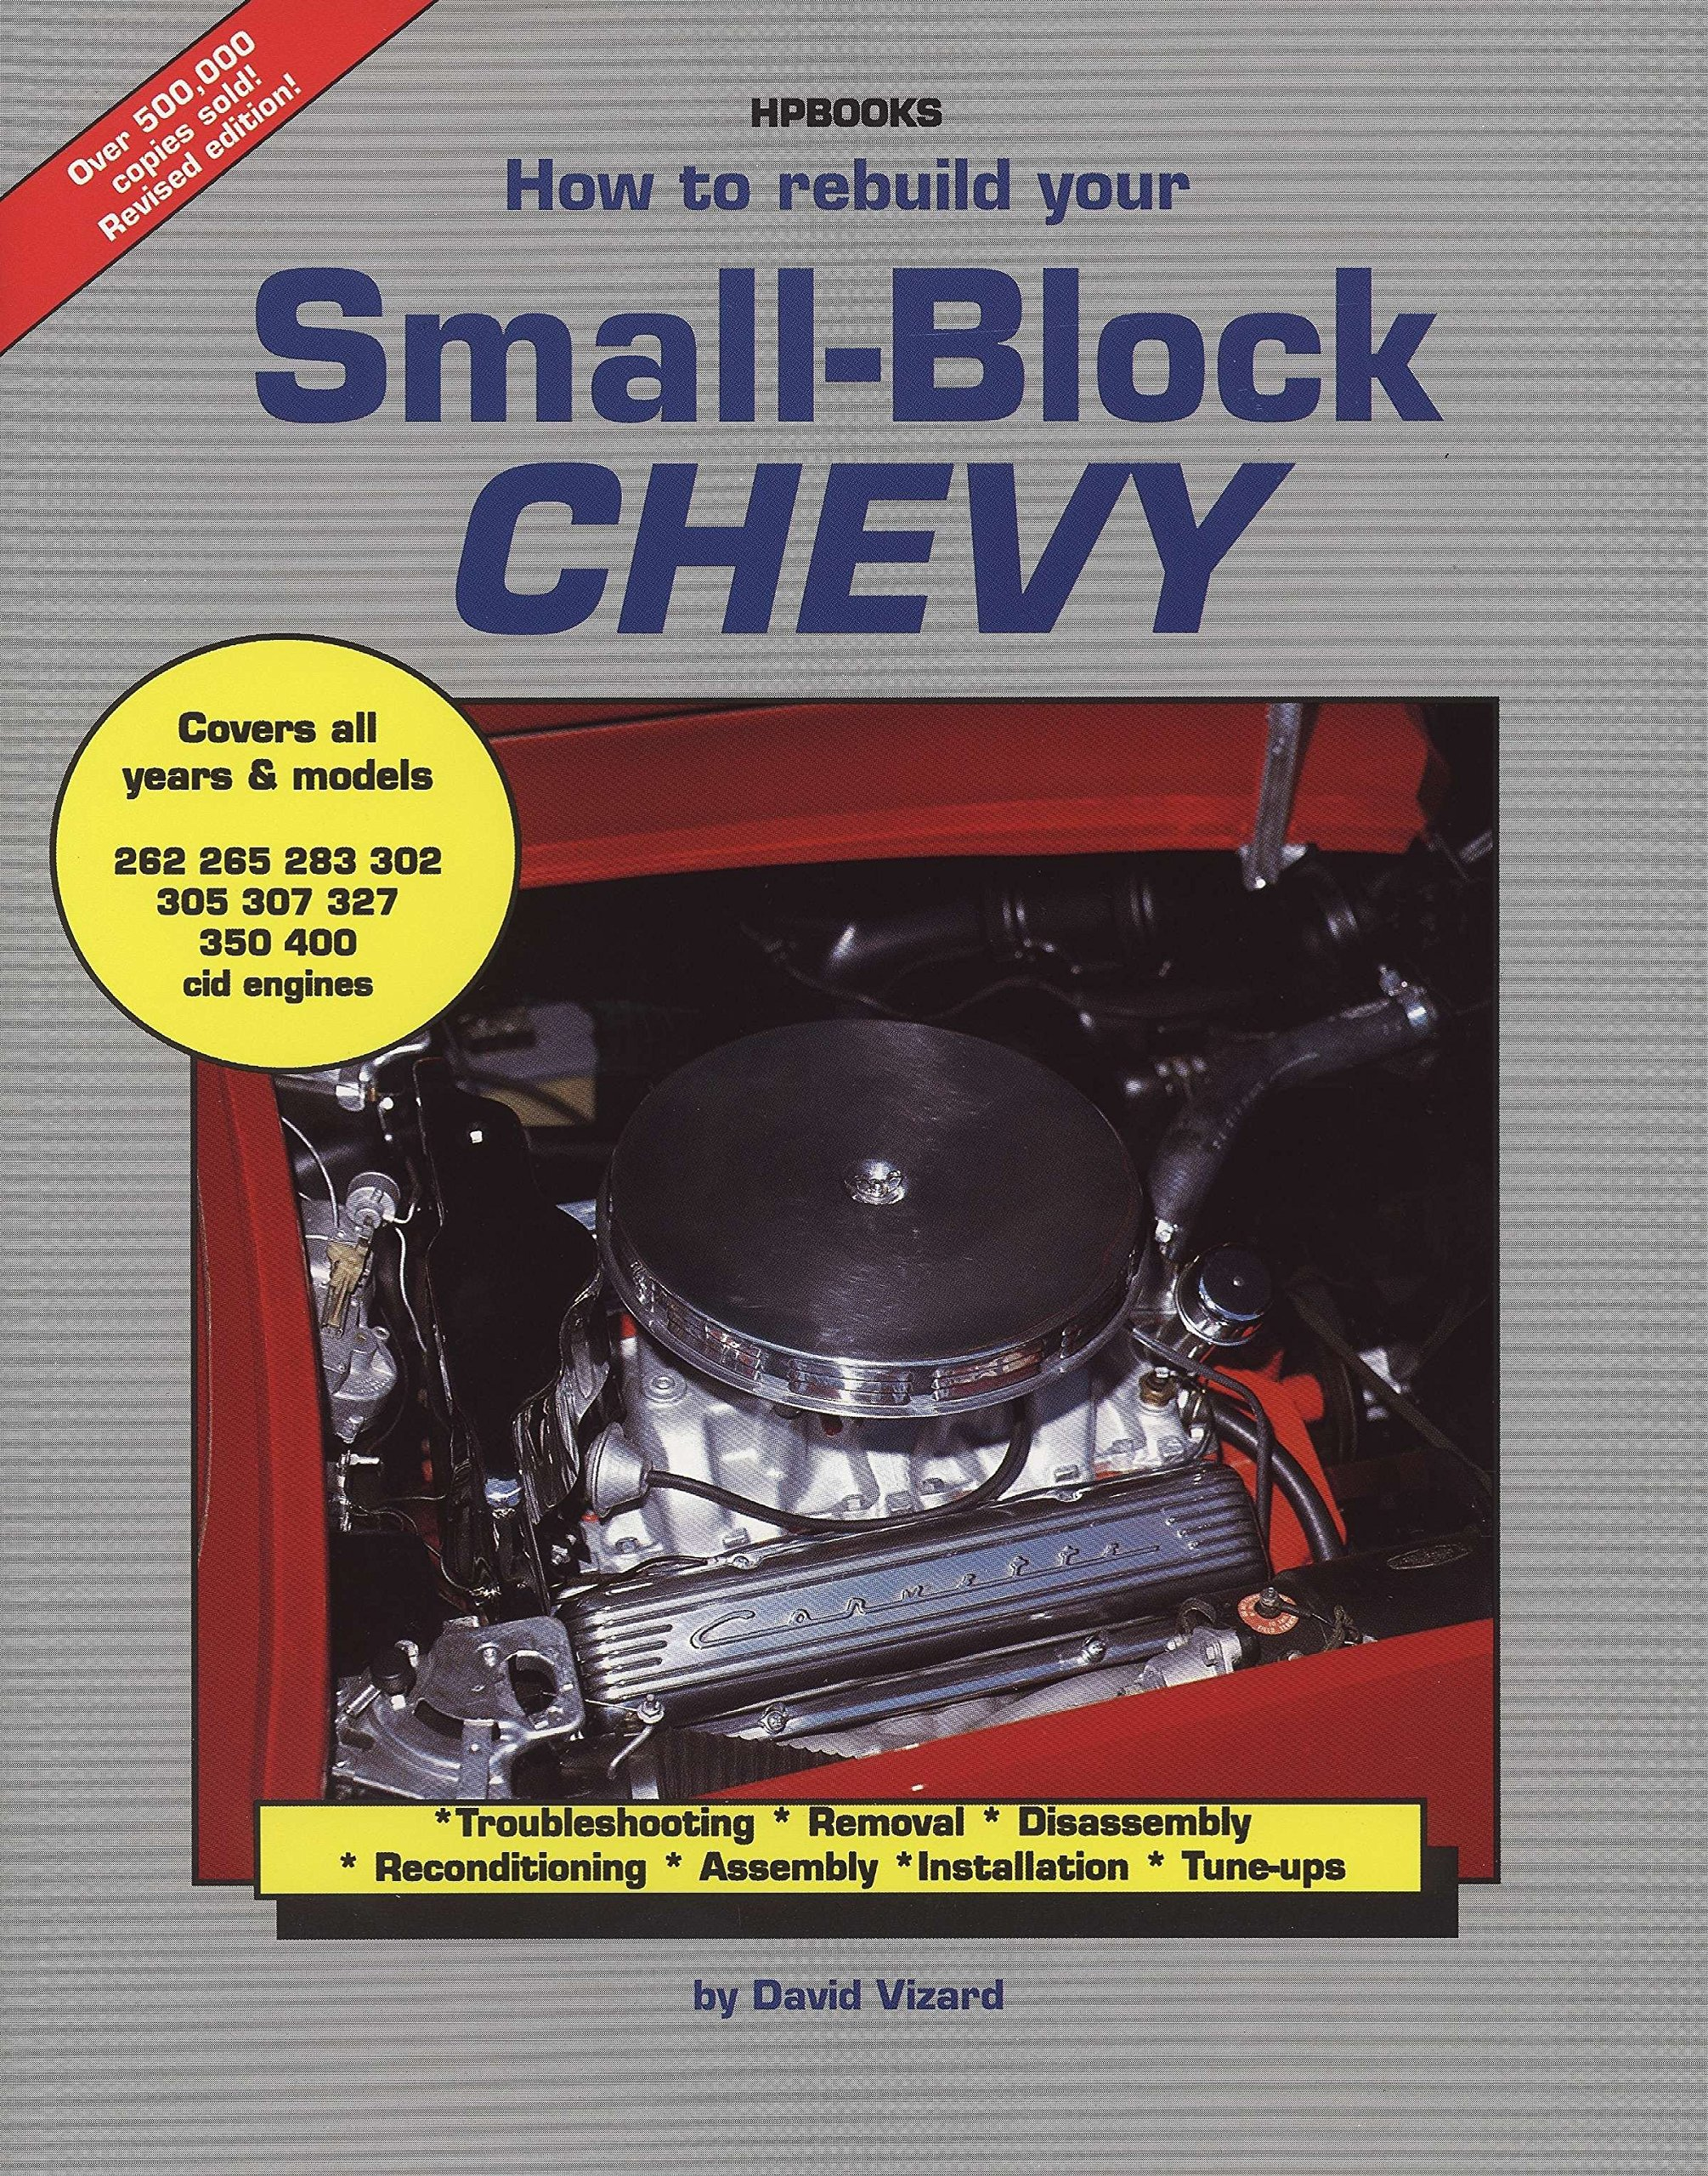 How to Rebuild Your Small-Block Chevy: David Vizard: 0075478010295:  Amazon.com: Books